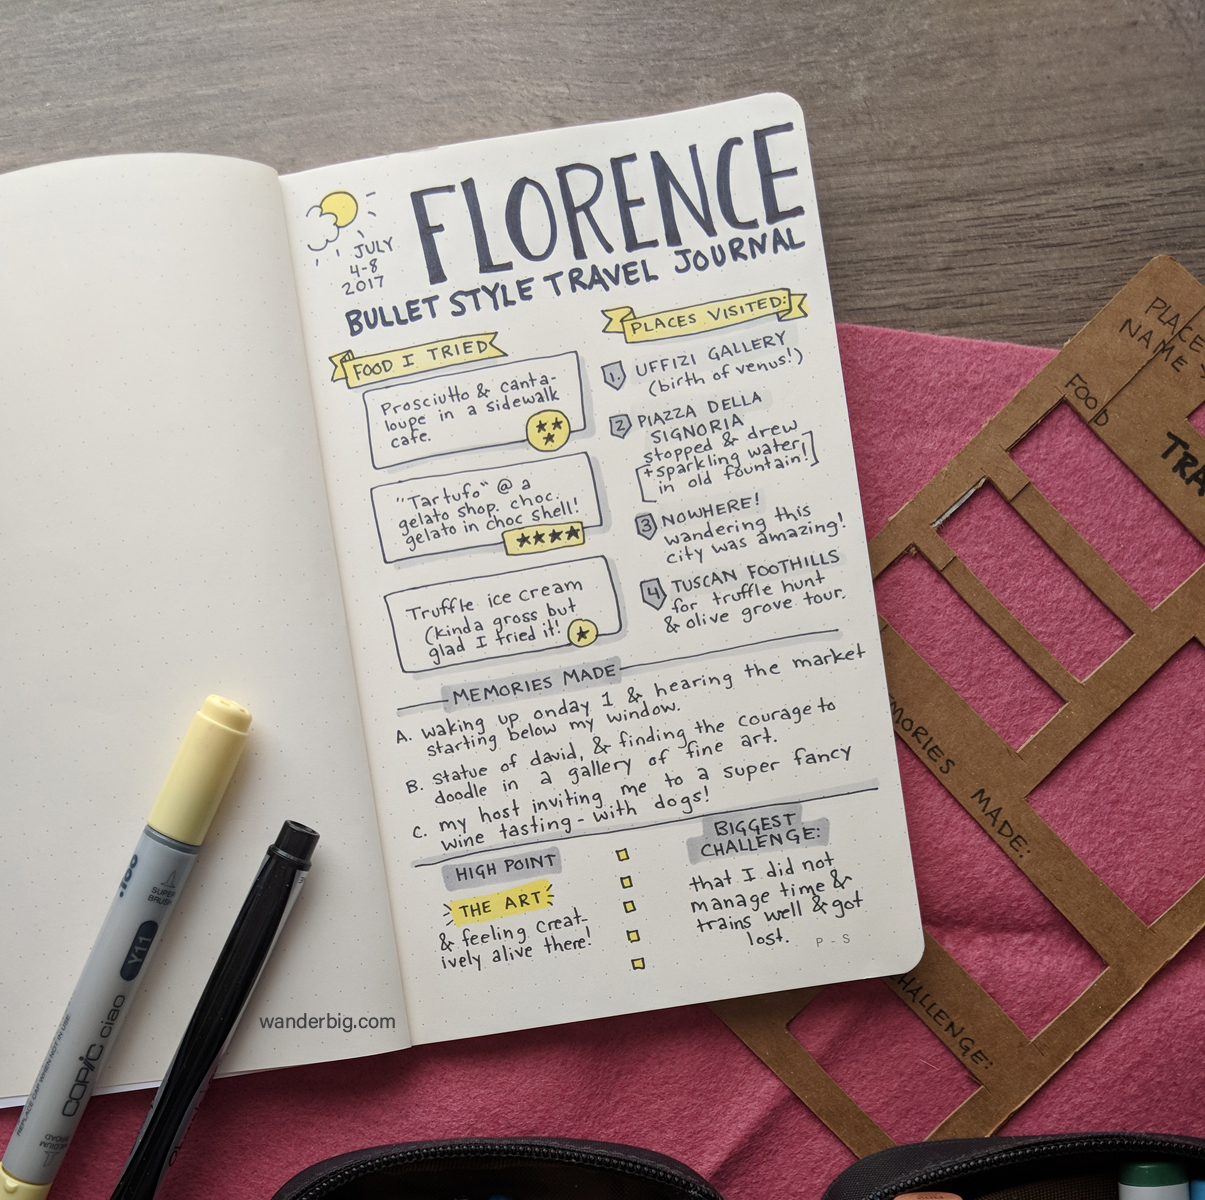 A bullet journal travel journal page about florence.